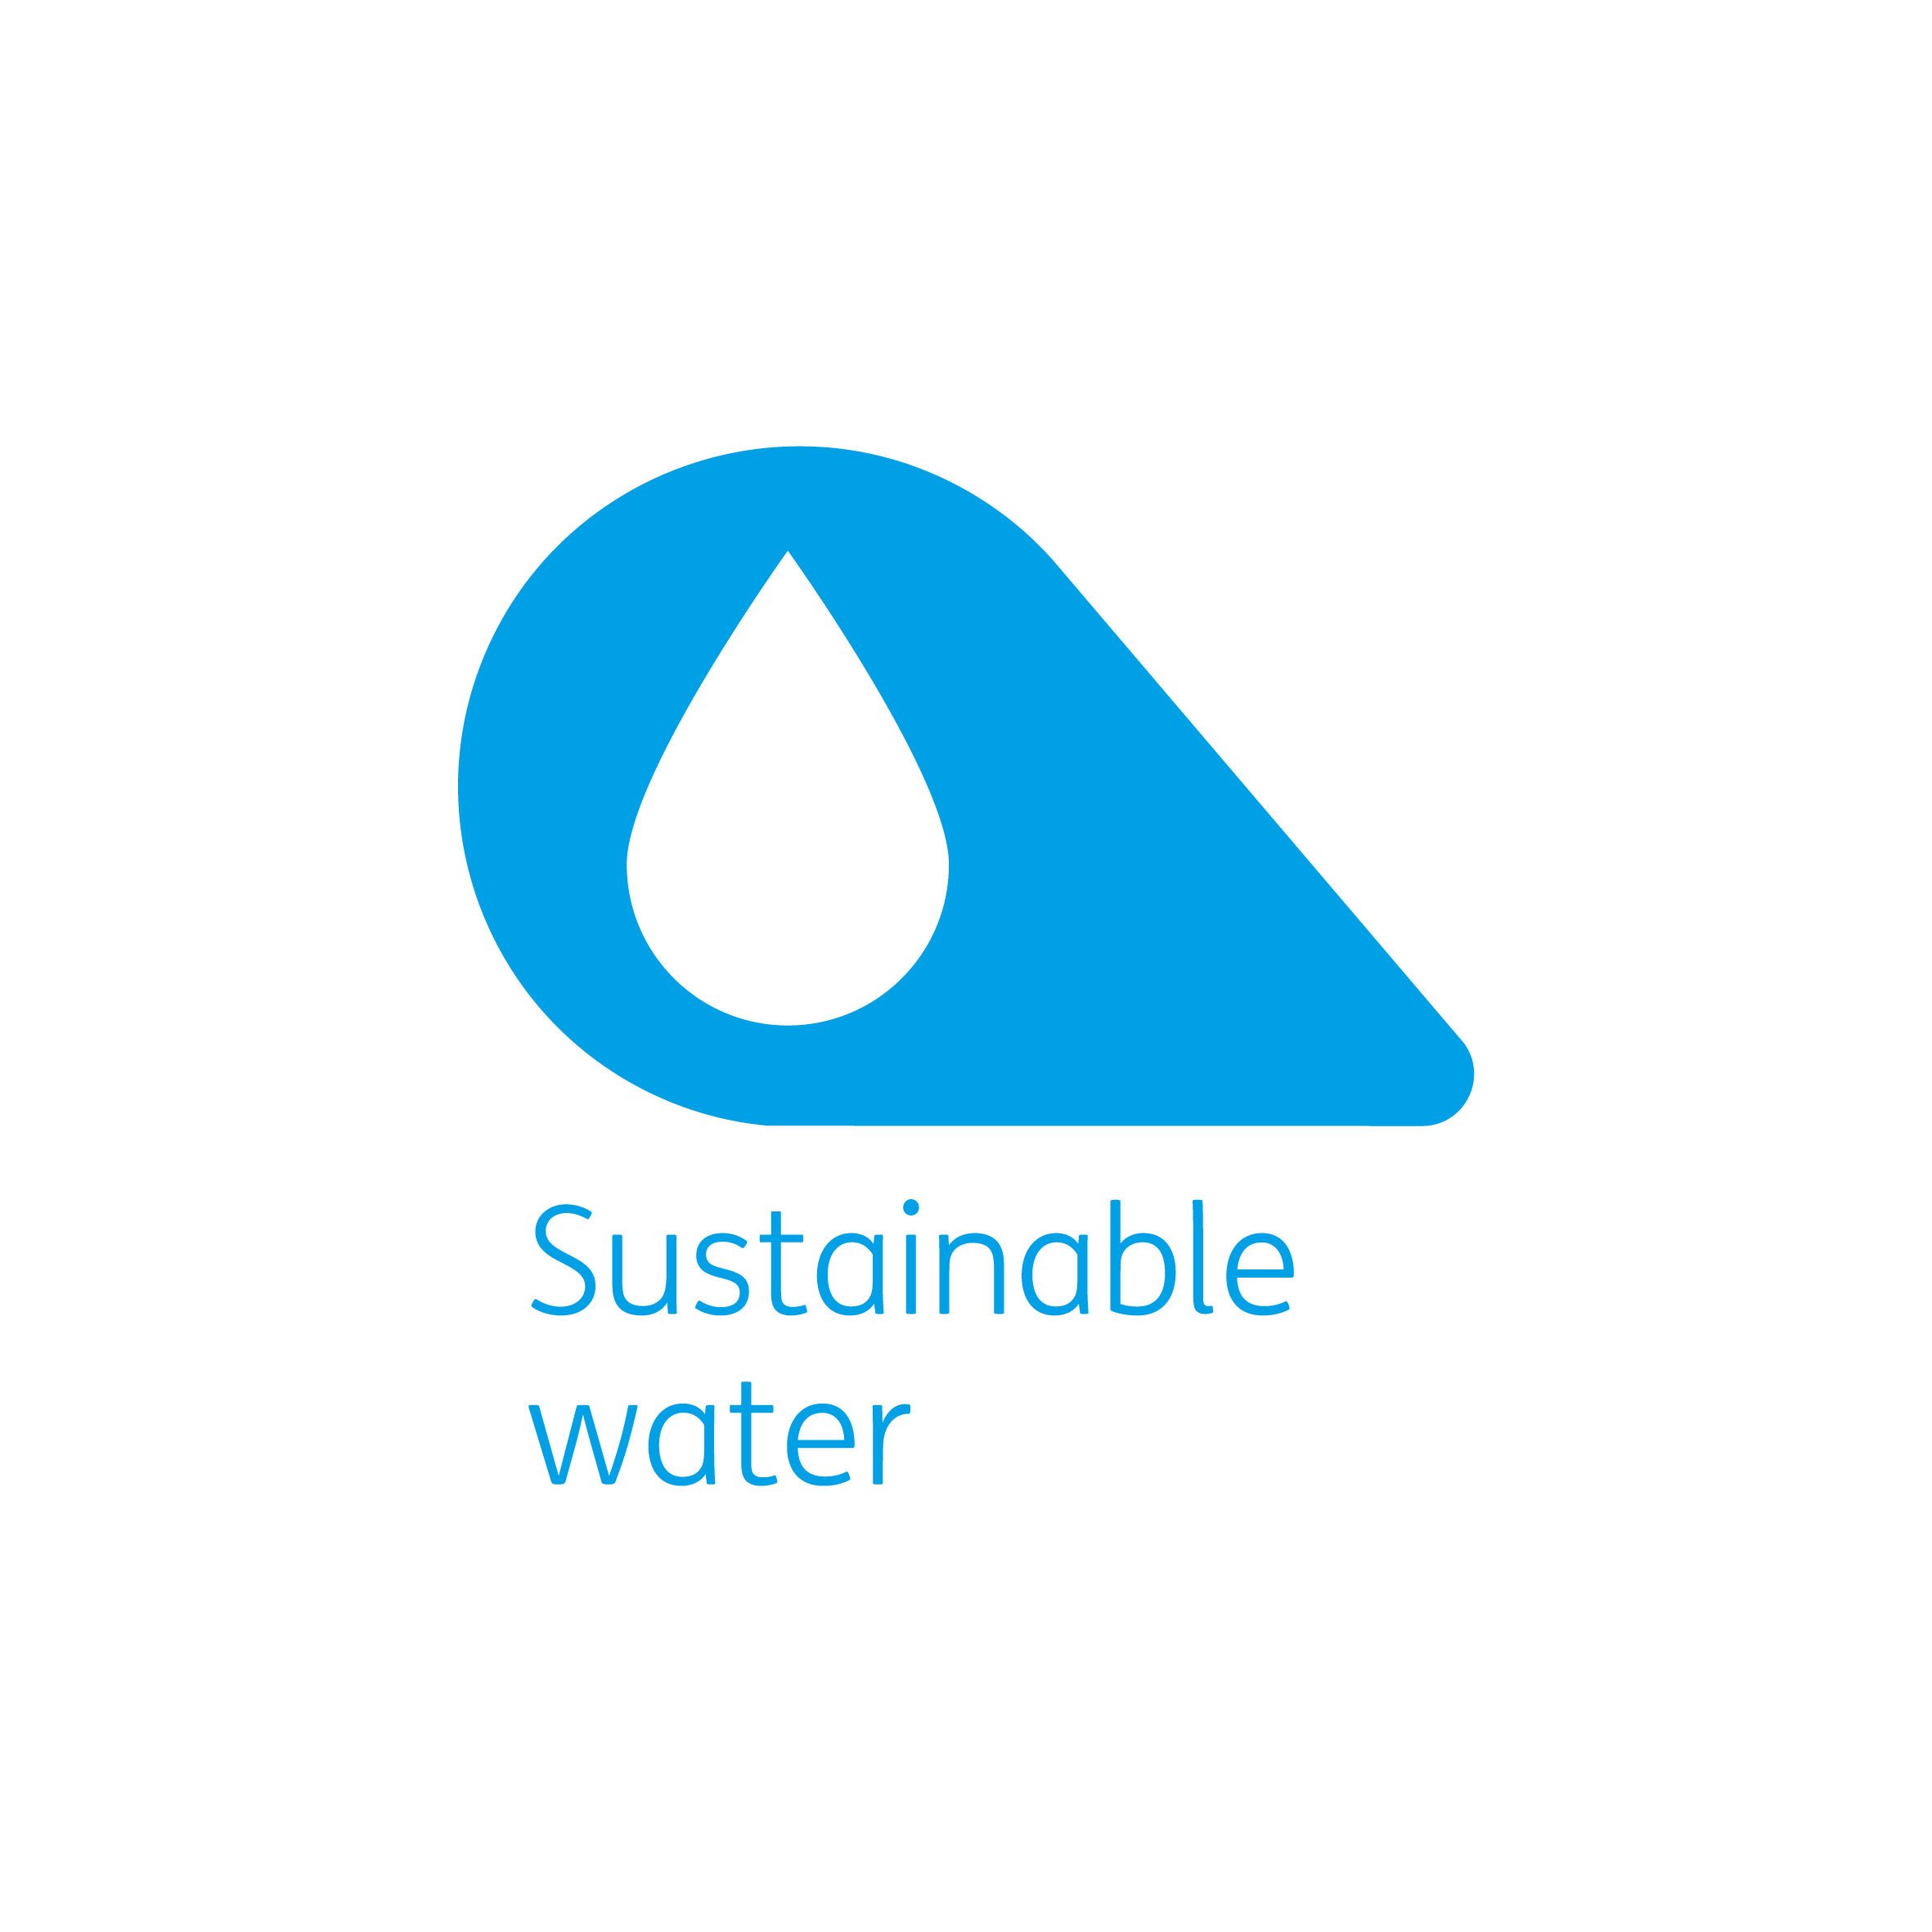 Sustainable water petal